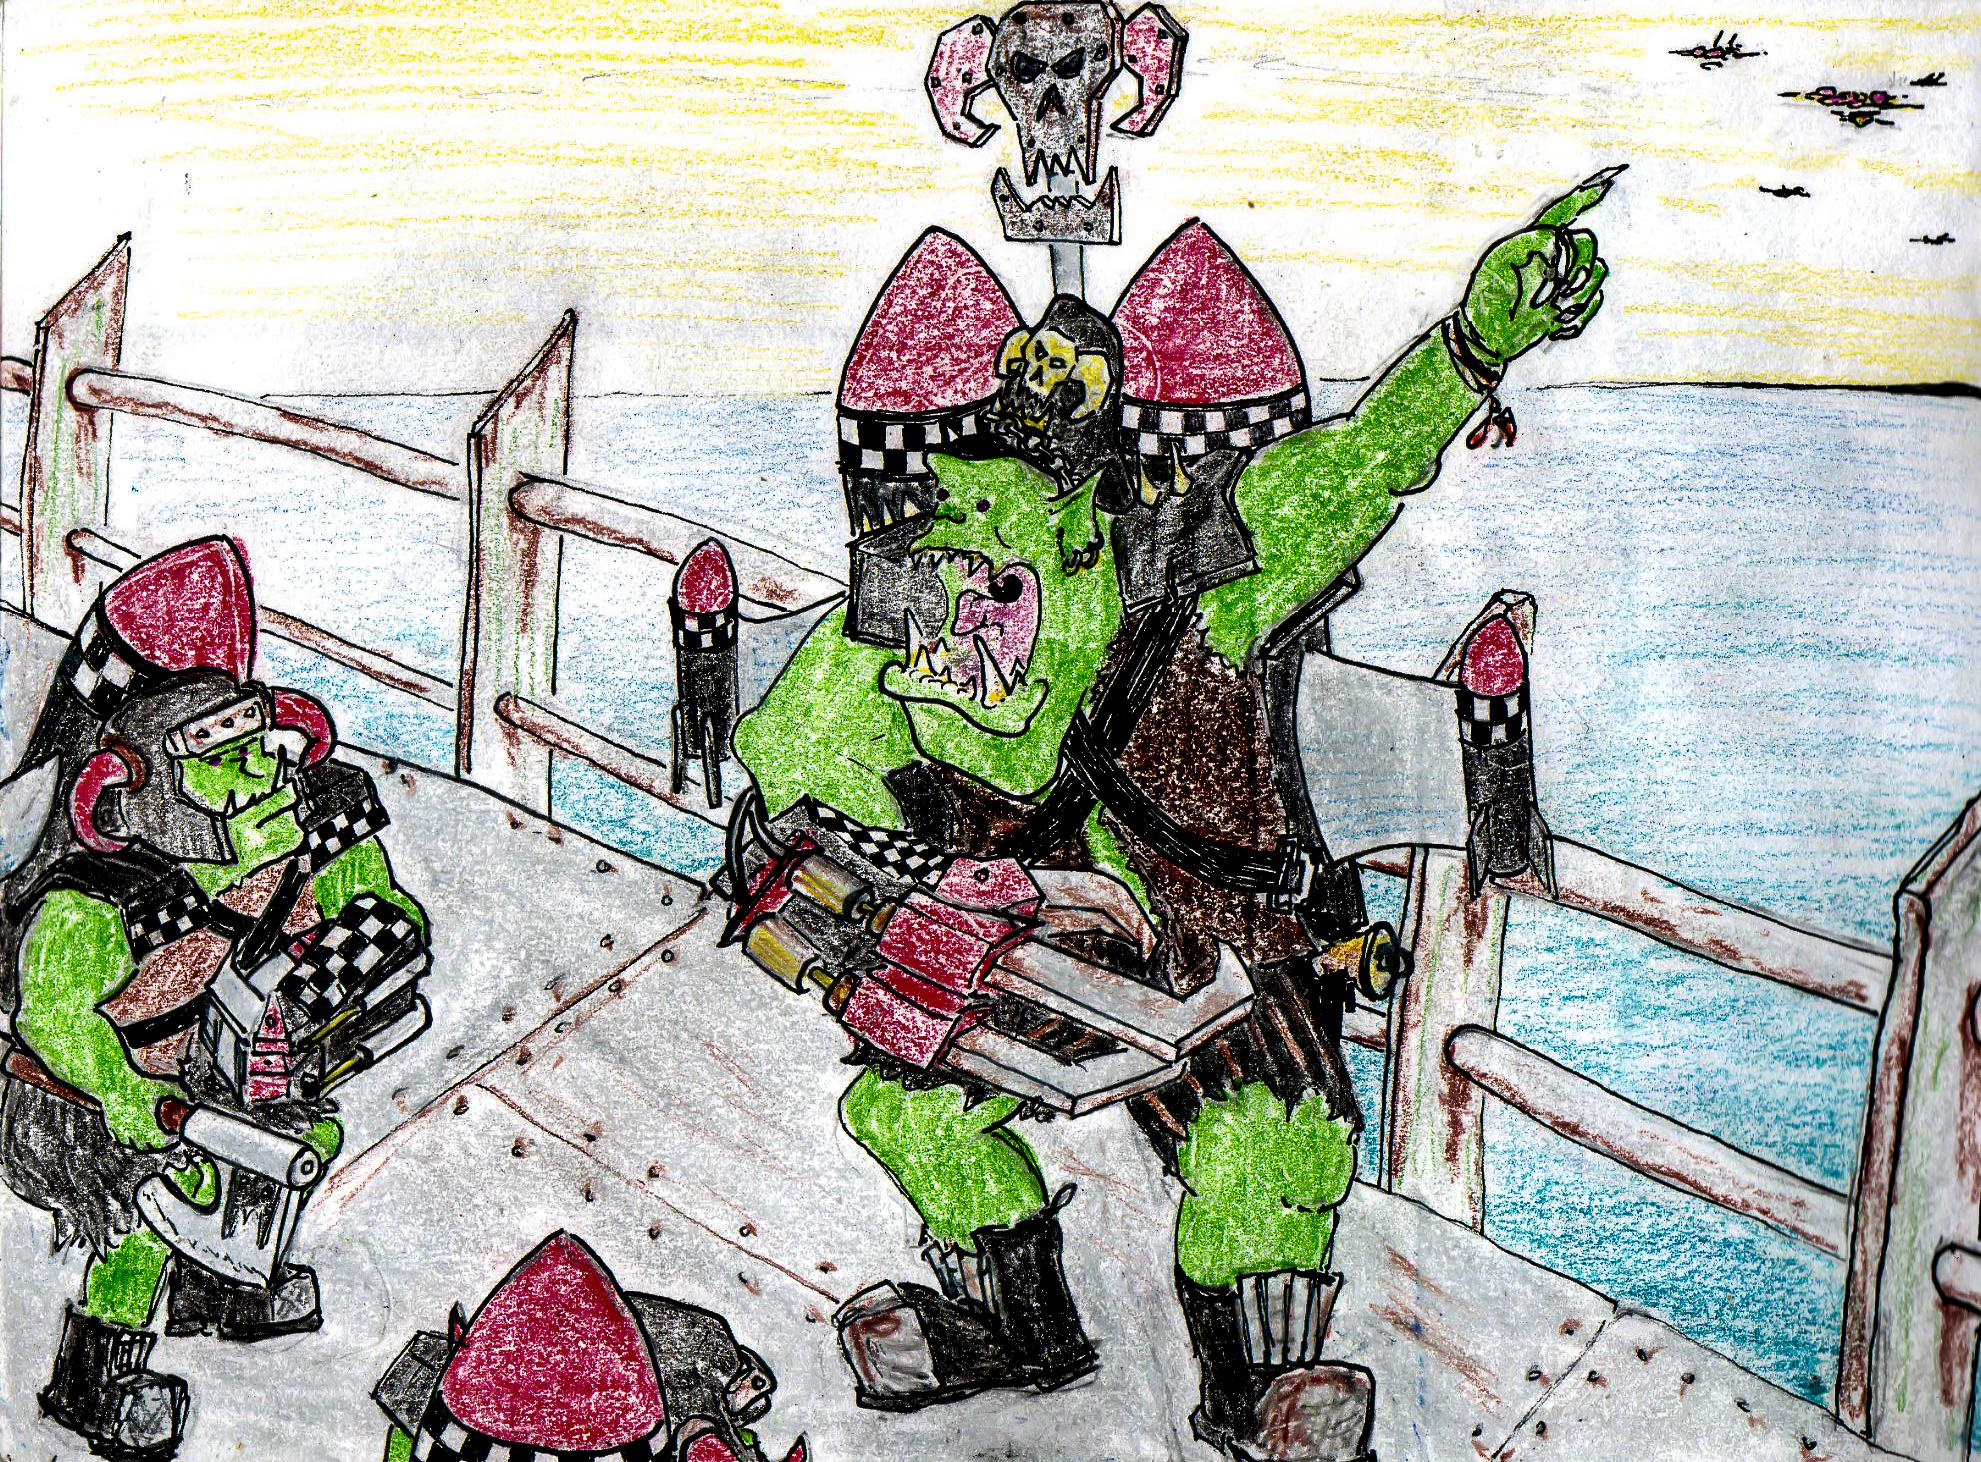 Cartoon, Comics, Drawing, Graphic, Grots, Humour, Illustration, Orks, Sketch, Sketching, Warhammer 40,000